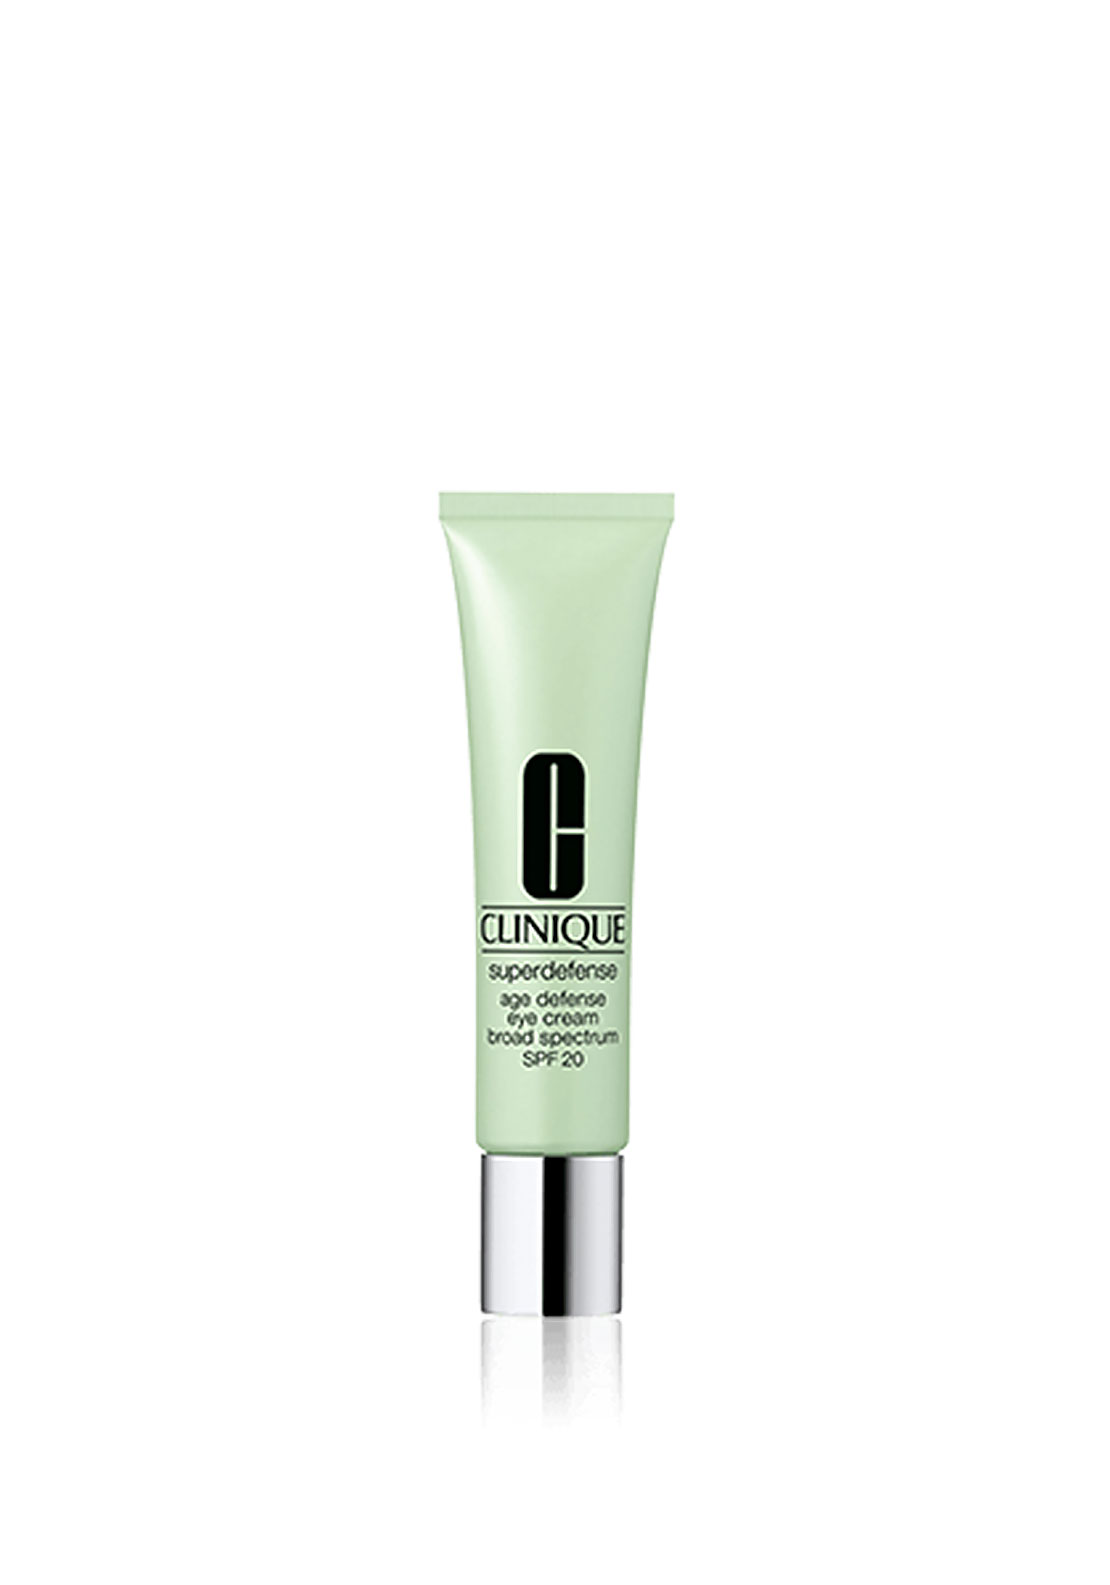 Clinique Superdefense SPF20 Age Defense Eye Cream